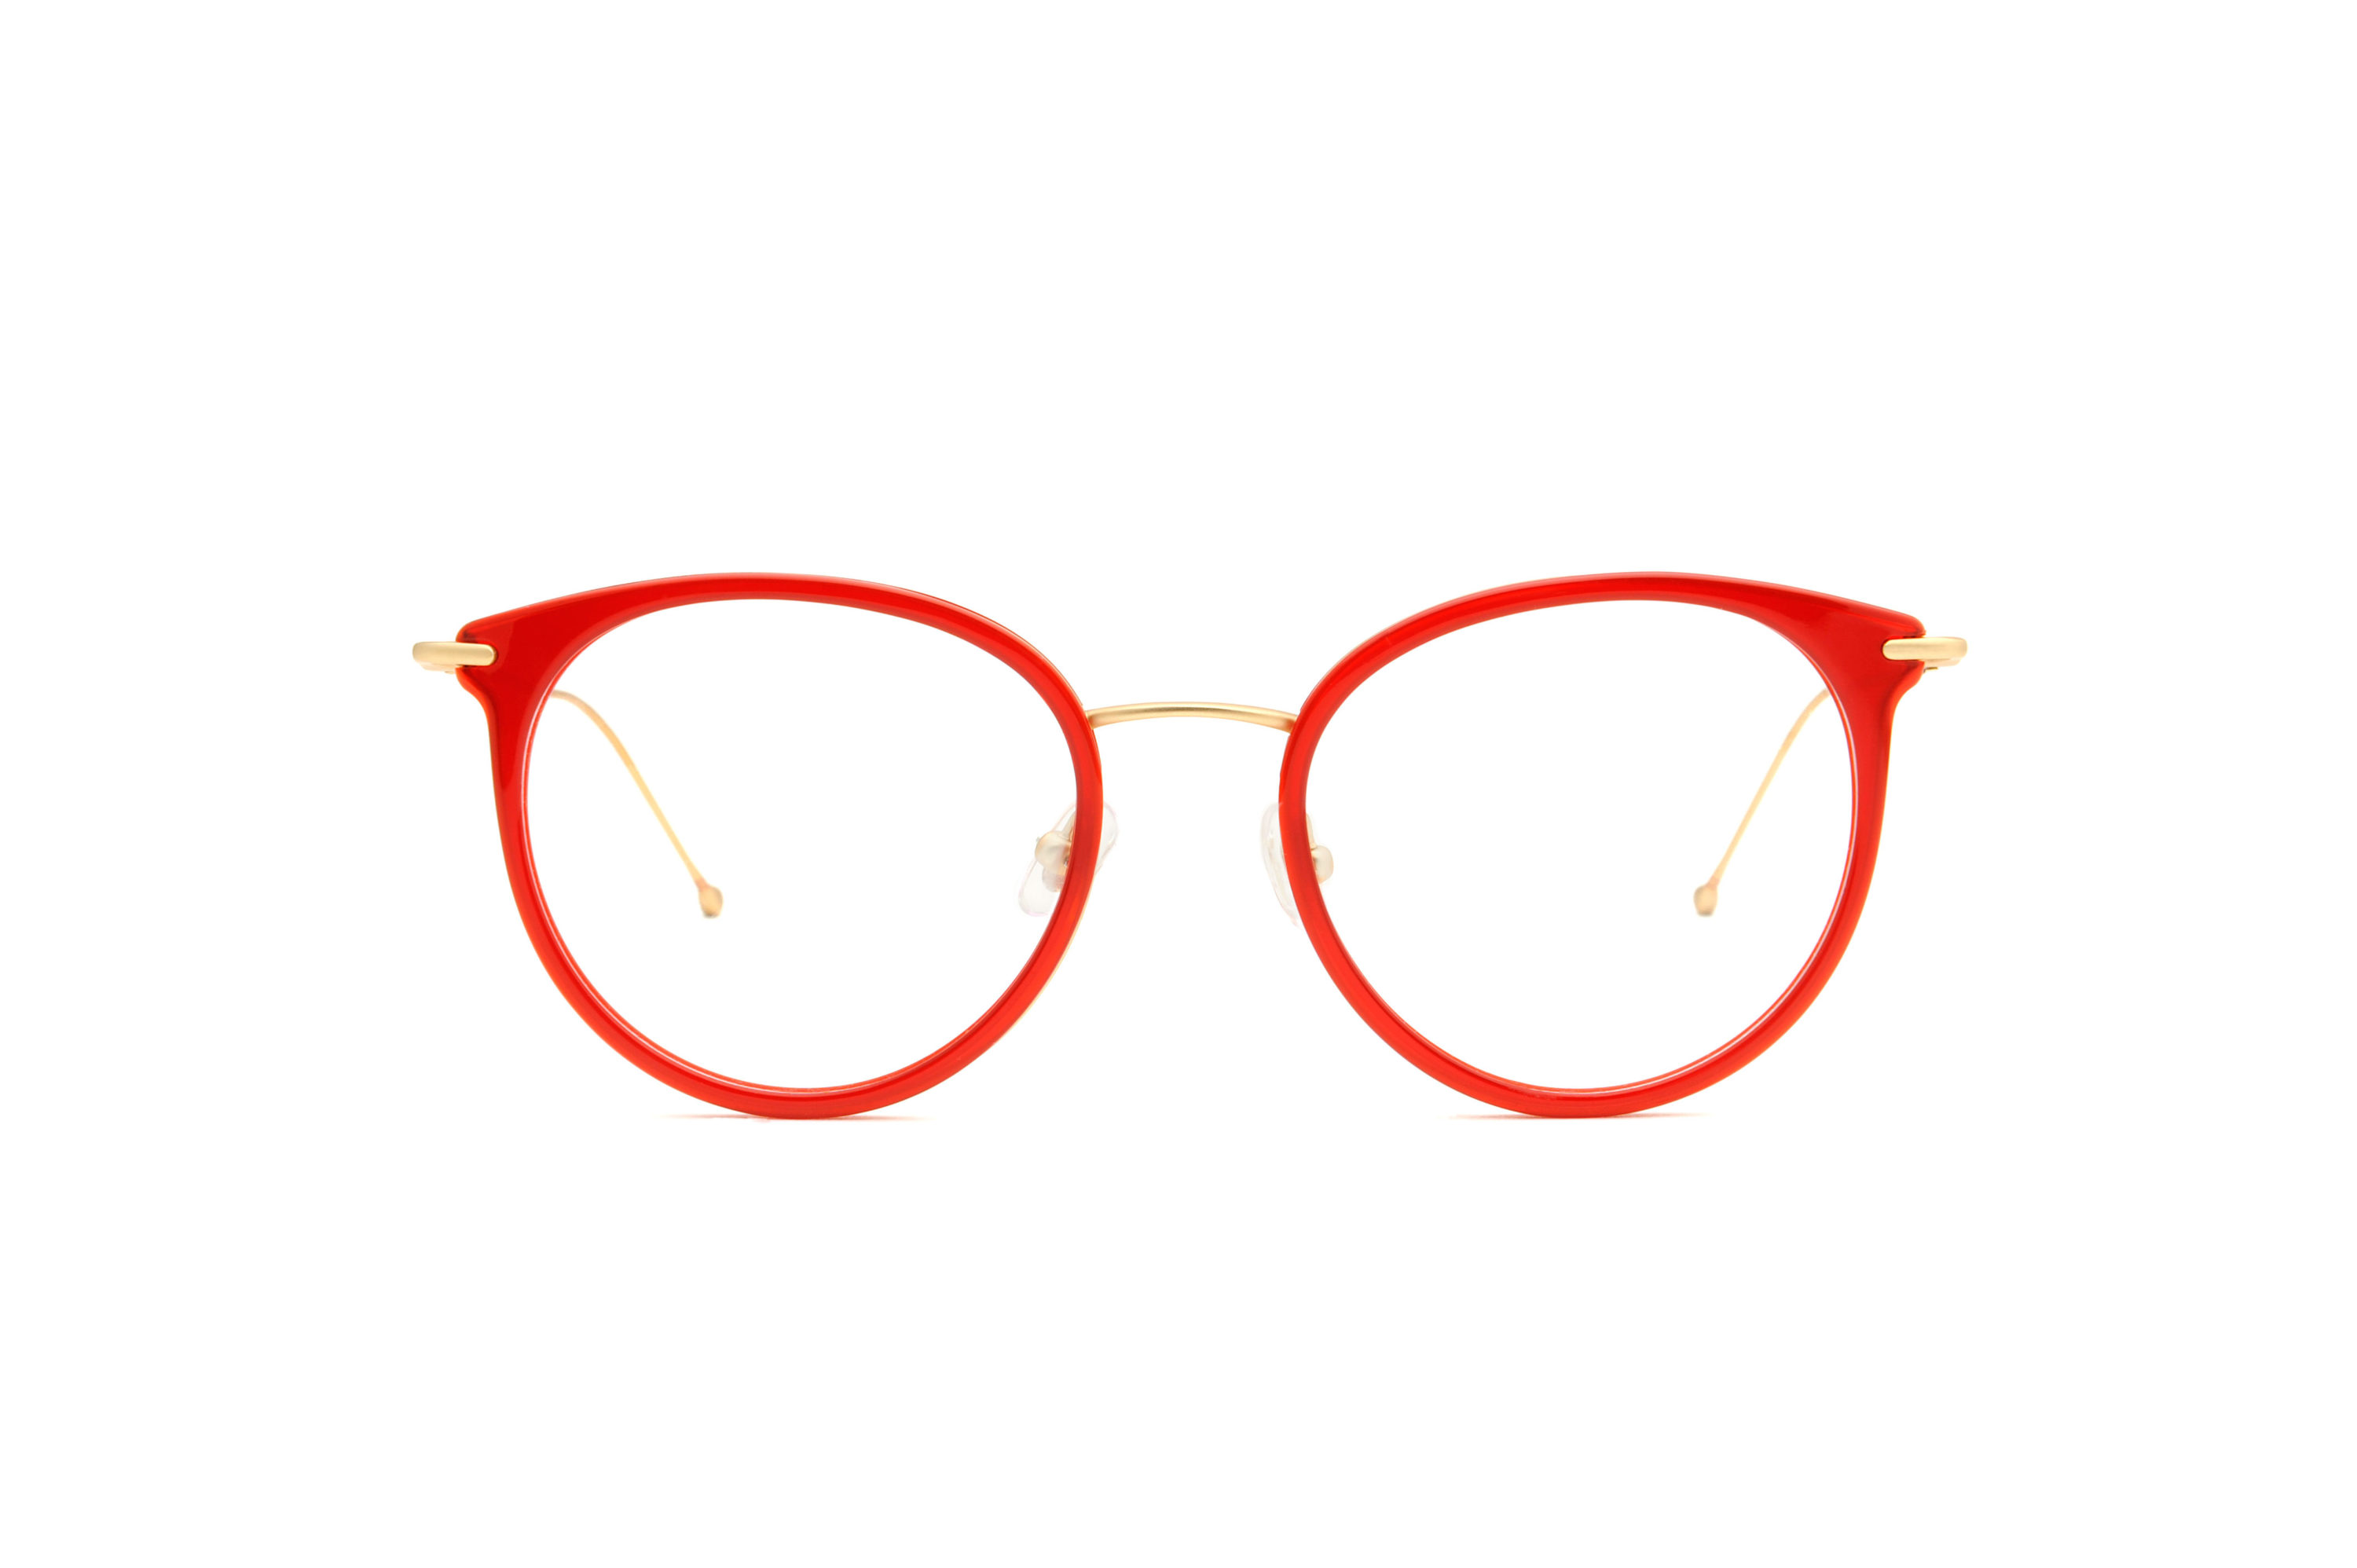 Rythm acetate/metal cat eye red sunglasses by GIGI Studios